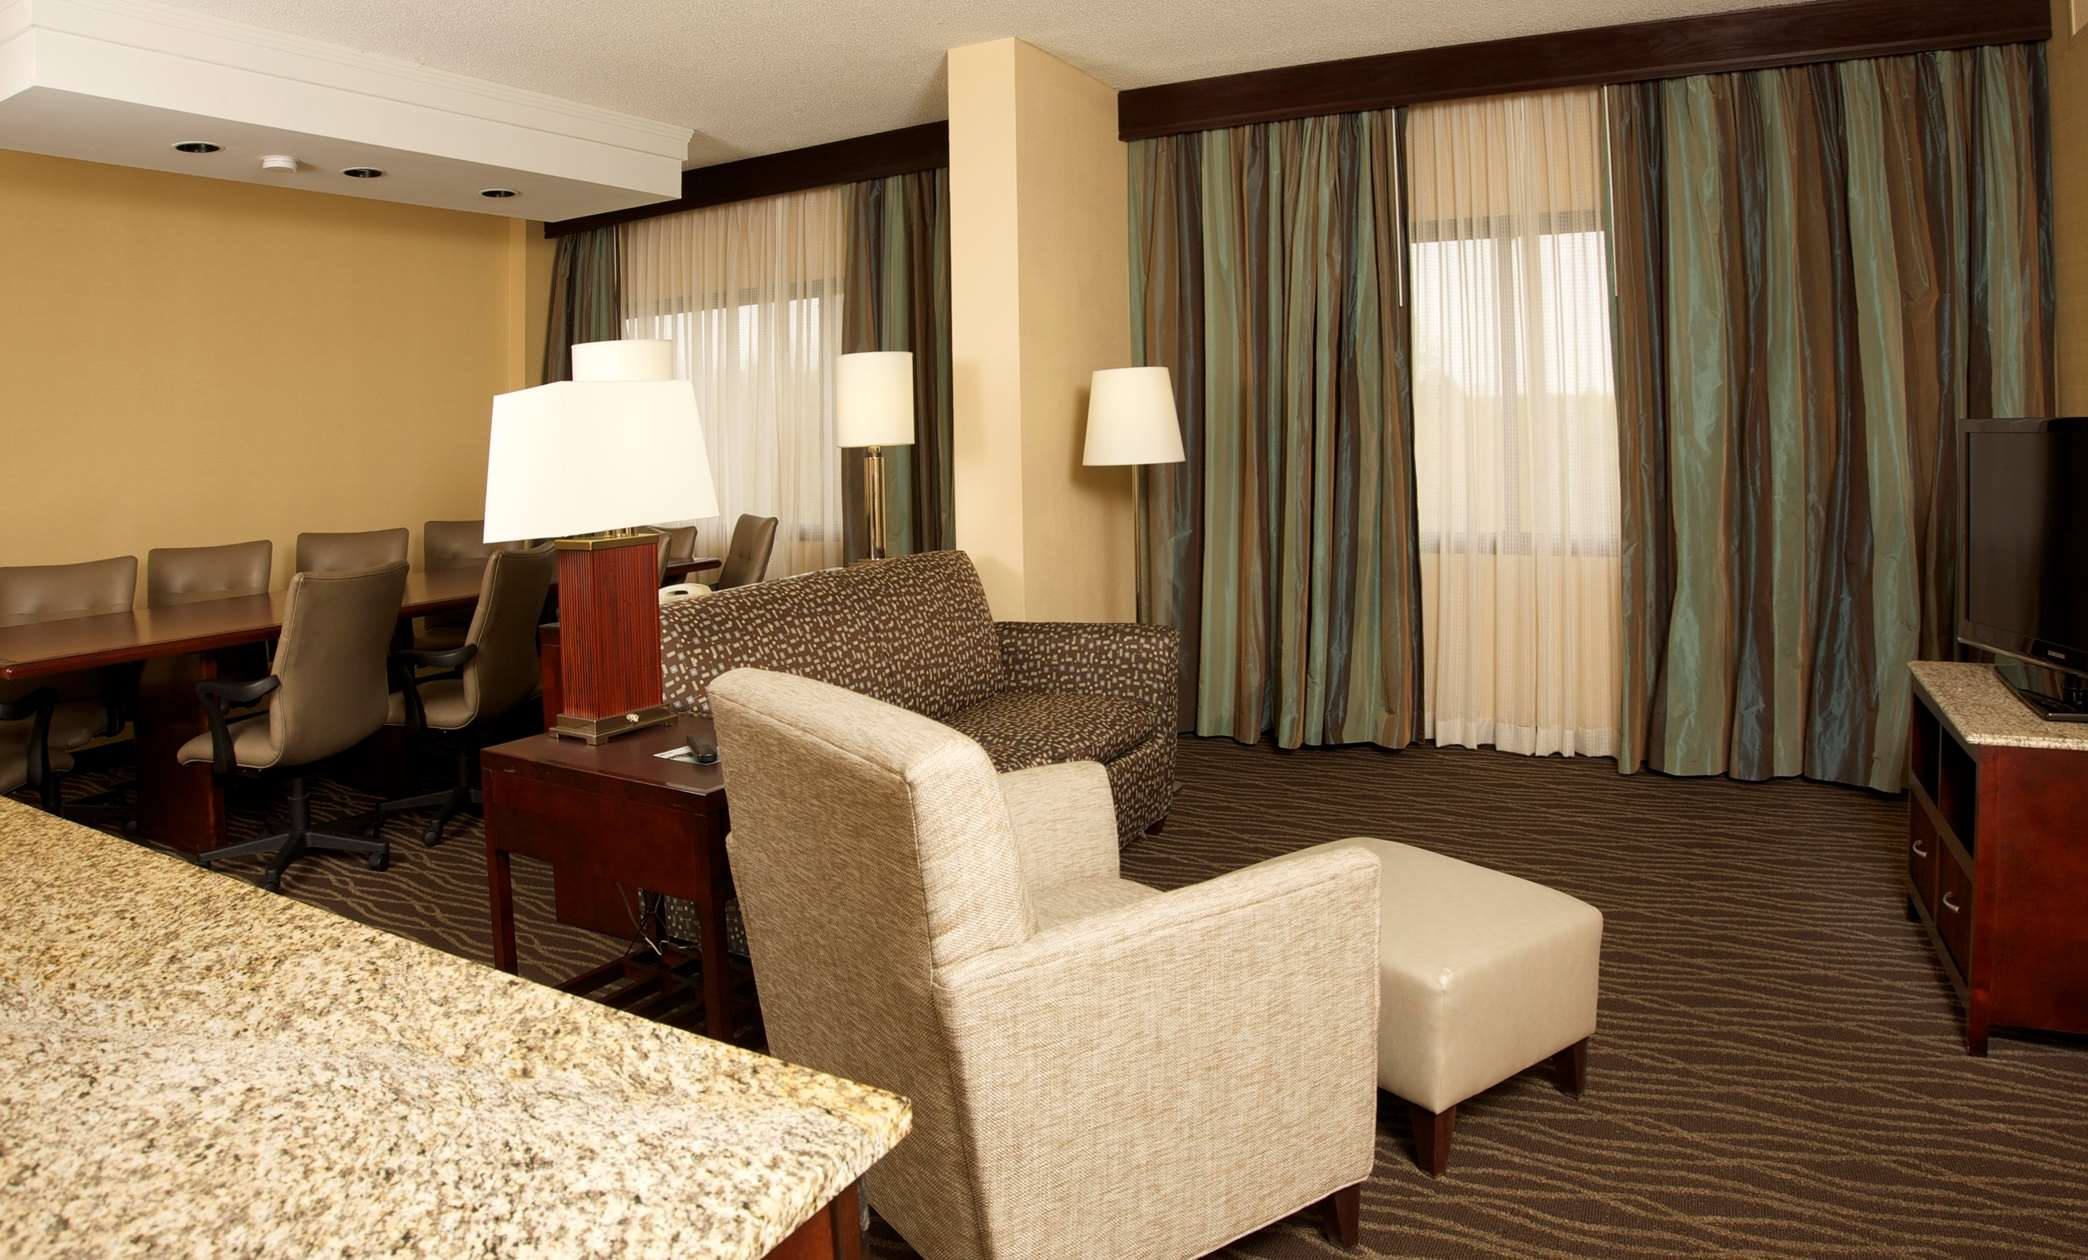 DoubleTree Suites by Hilton Hotel Raleigh - Durham image 29